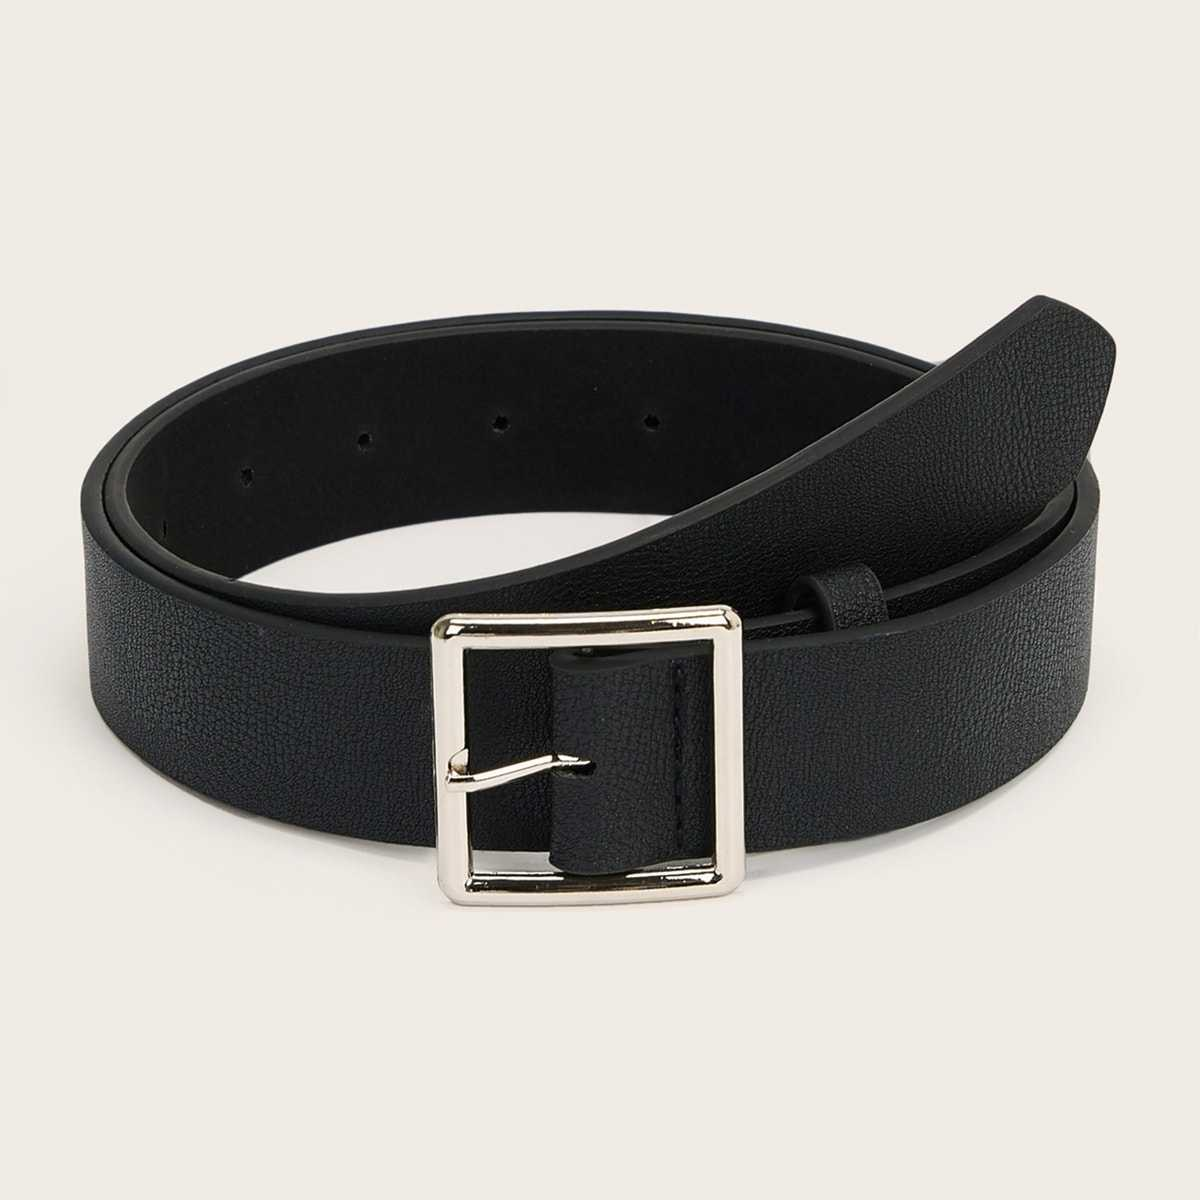 Guys Square Metal Buckle Belt in Black by ROMWE on GOOFASH